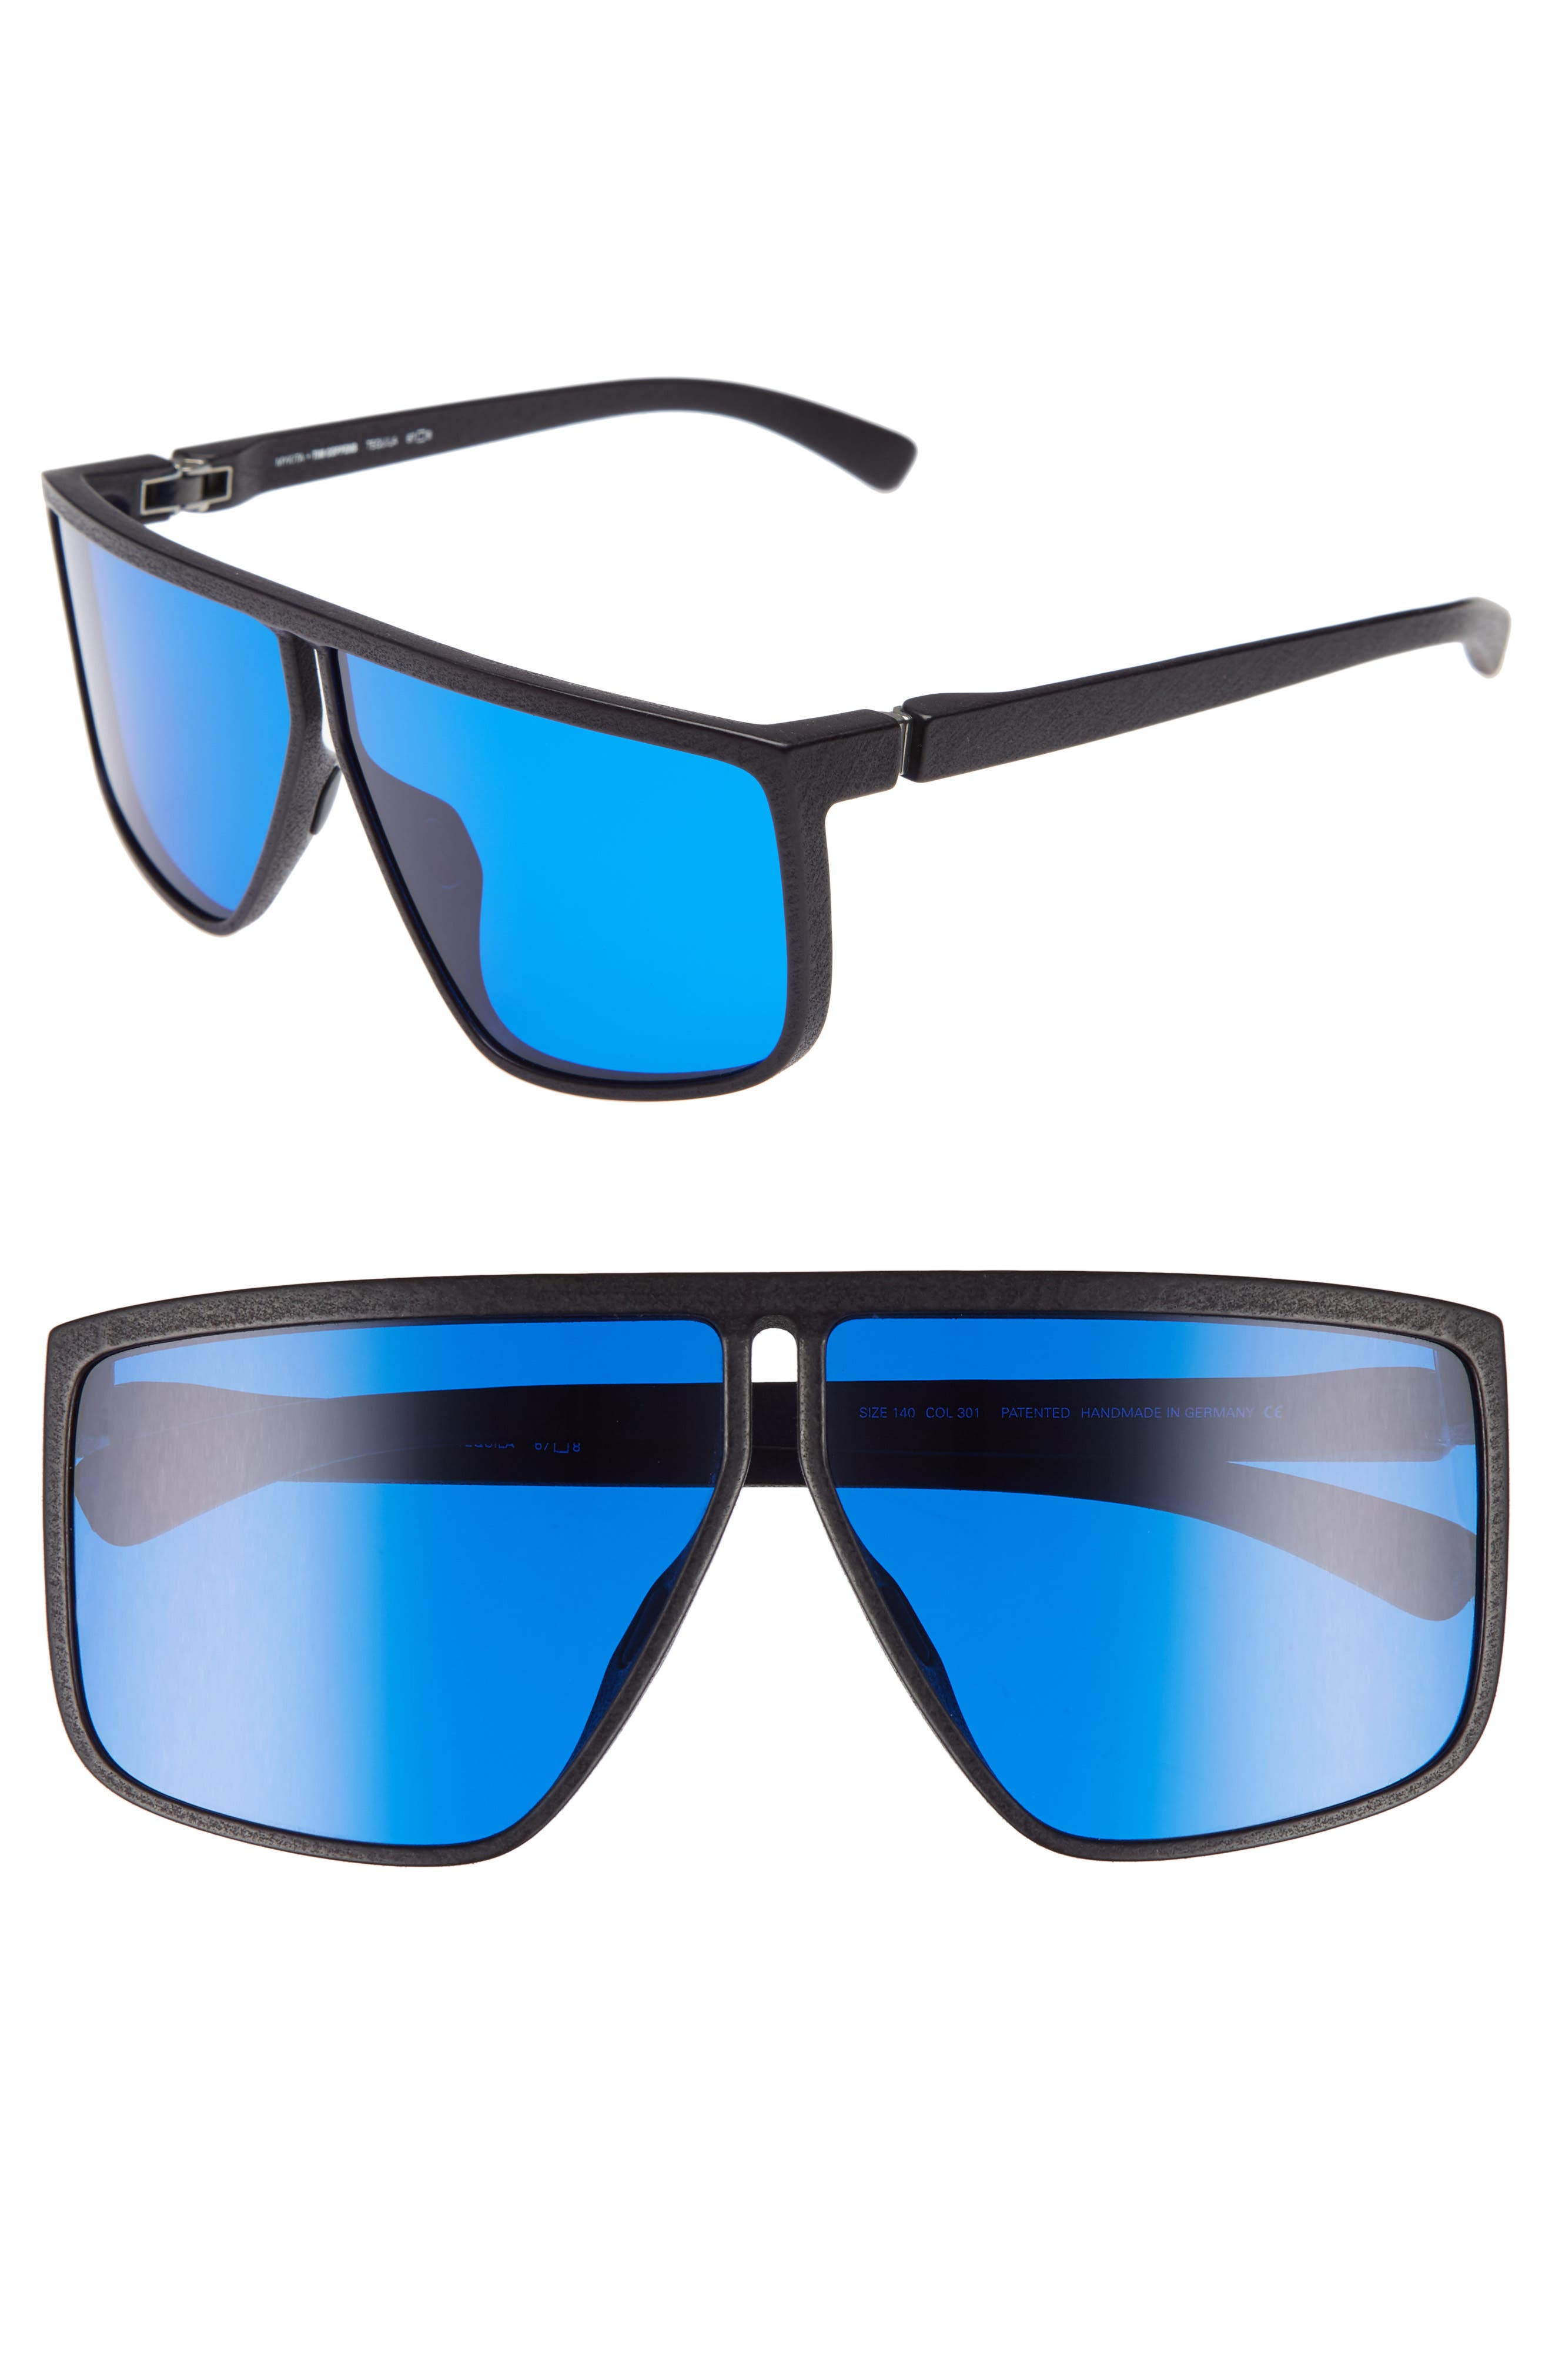 Tequila 67mm Sunglasses,                         Main,                         color, Pitch Black/ Navy Shield